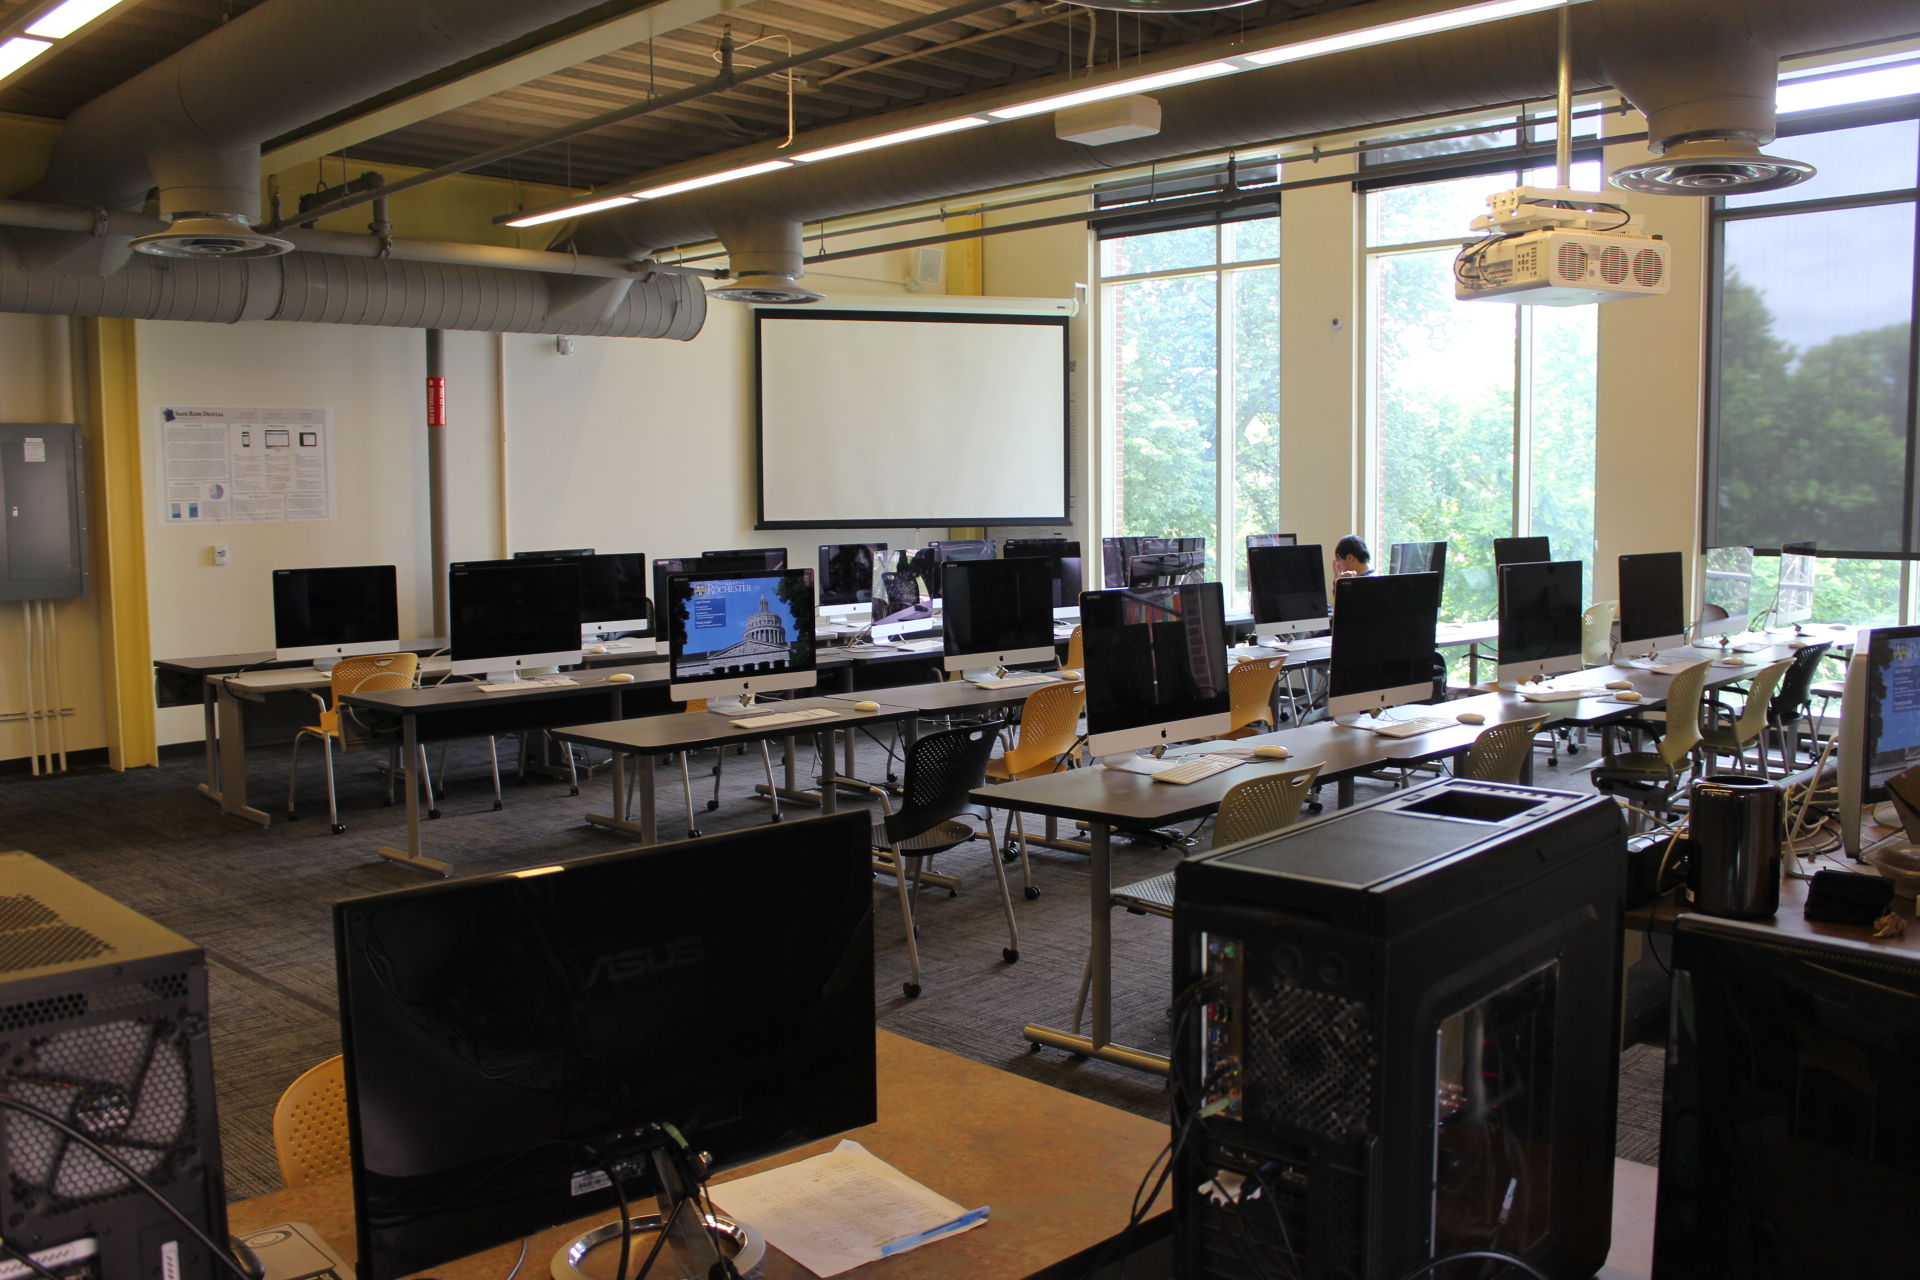 The Rettner Computer Lab